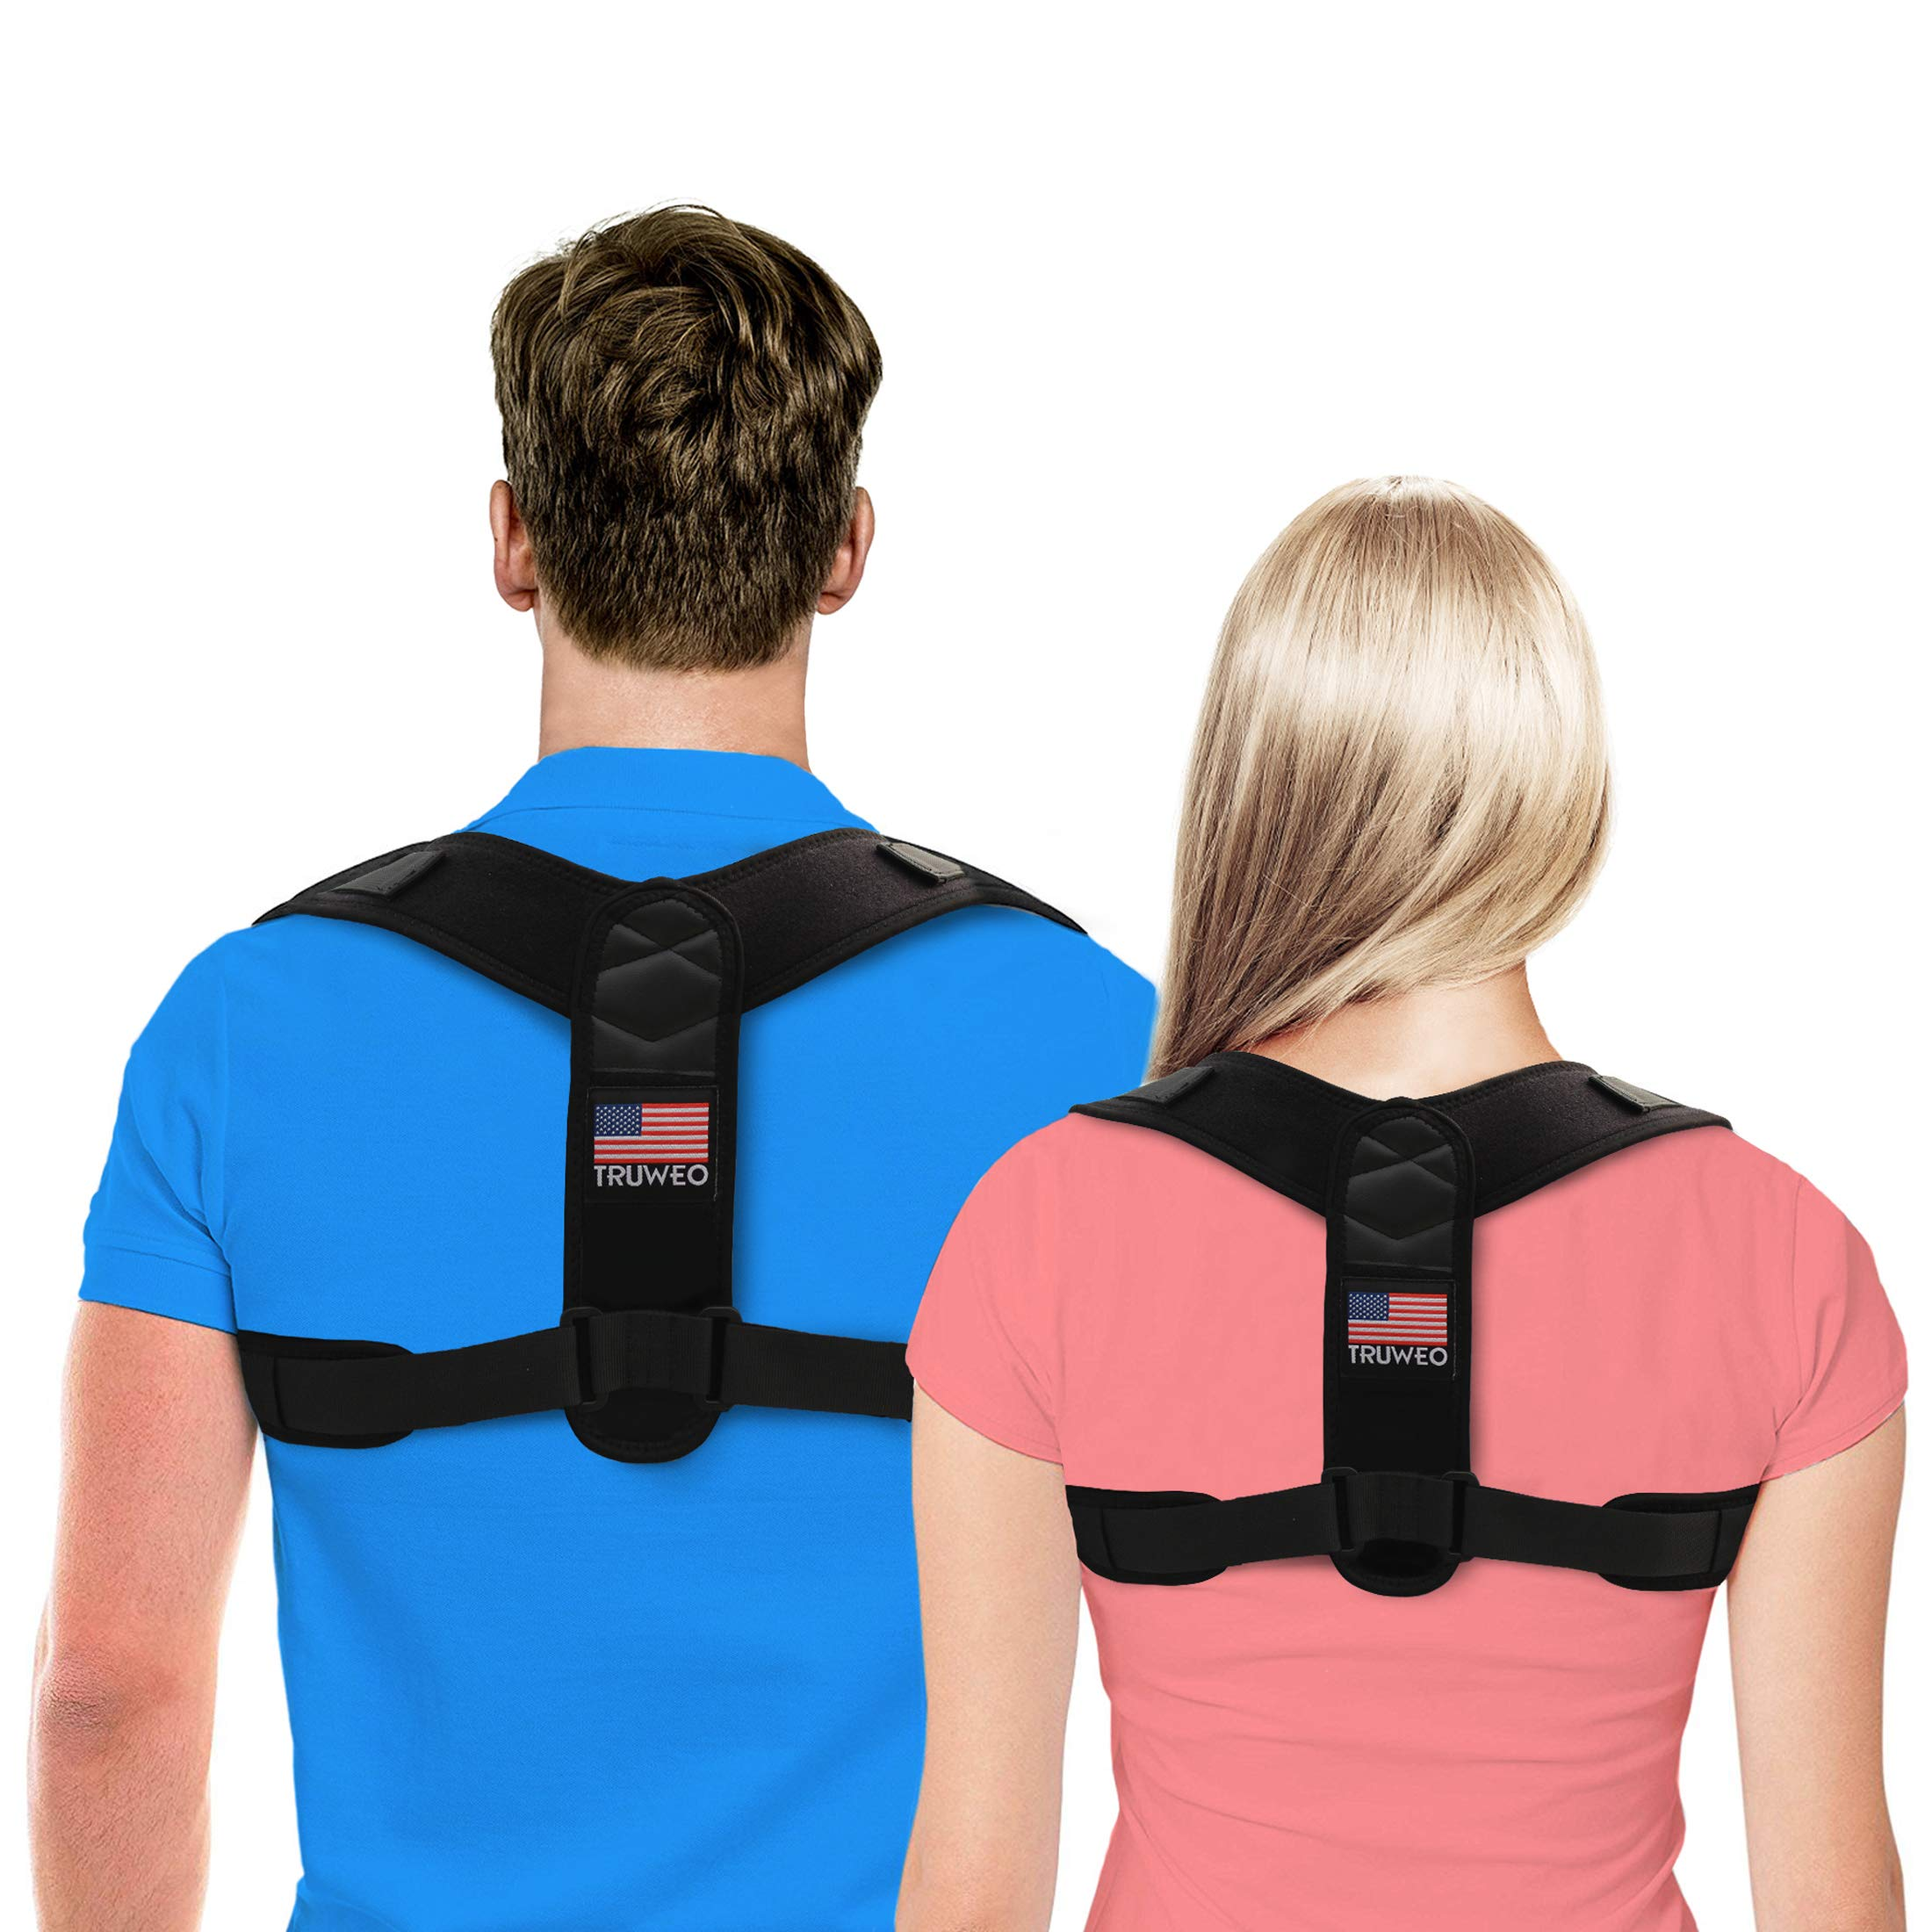 TRUWEO Posture Corrector for Men and Women - USA Designed Upper Back Brace for Clavicle Support and Providing Pain Relief from Neck, Back & Shoulder (Regular (Chest Size: 32 to 42 inches))